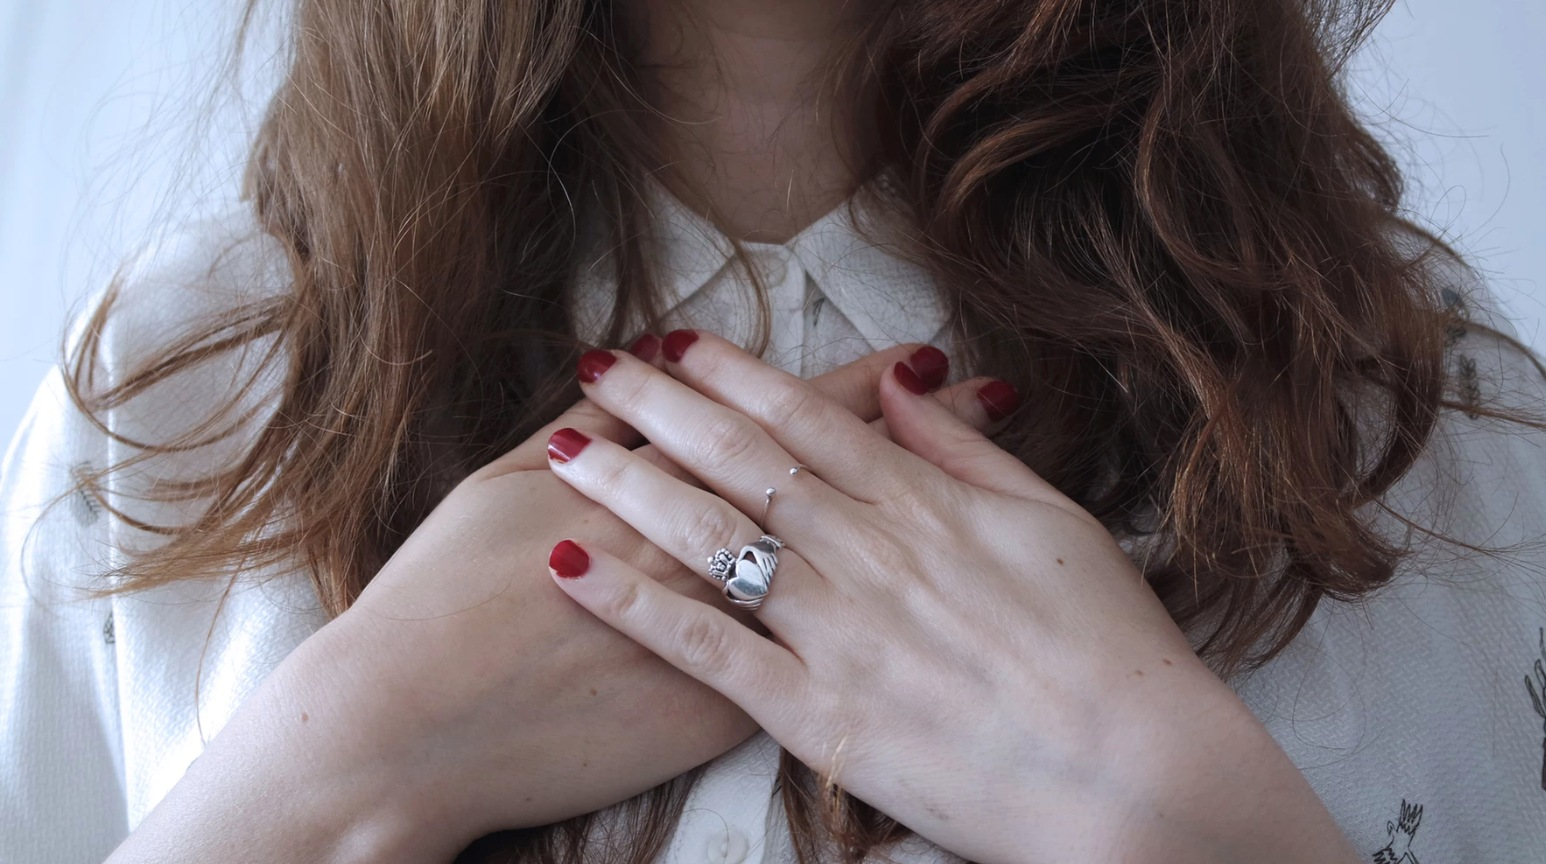 A young woman crosses her hands over her heart